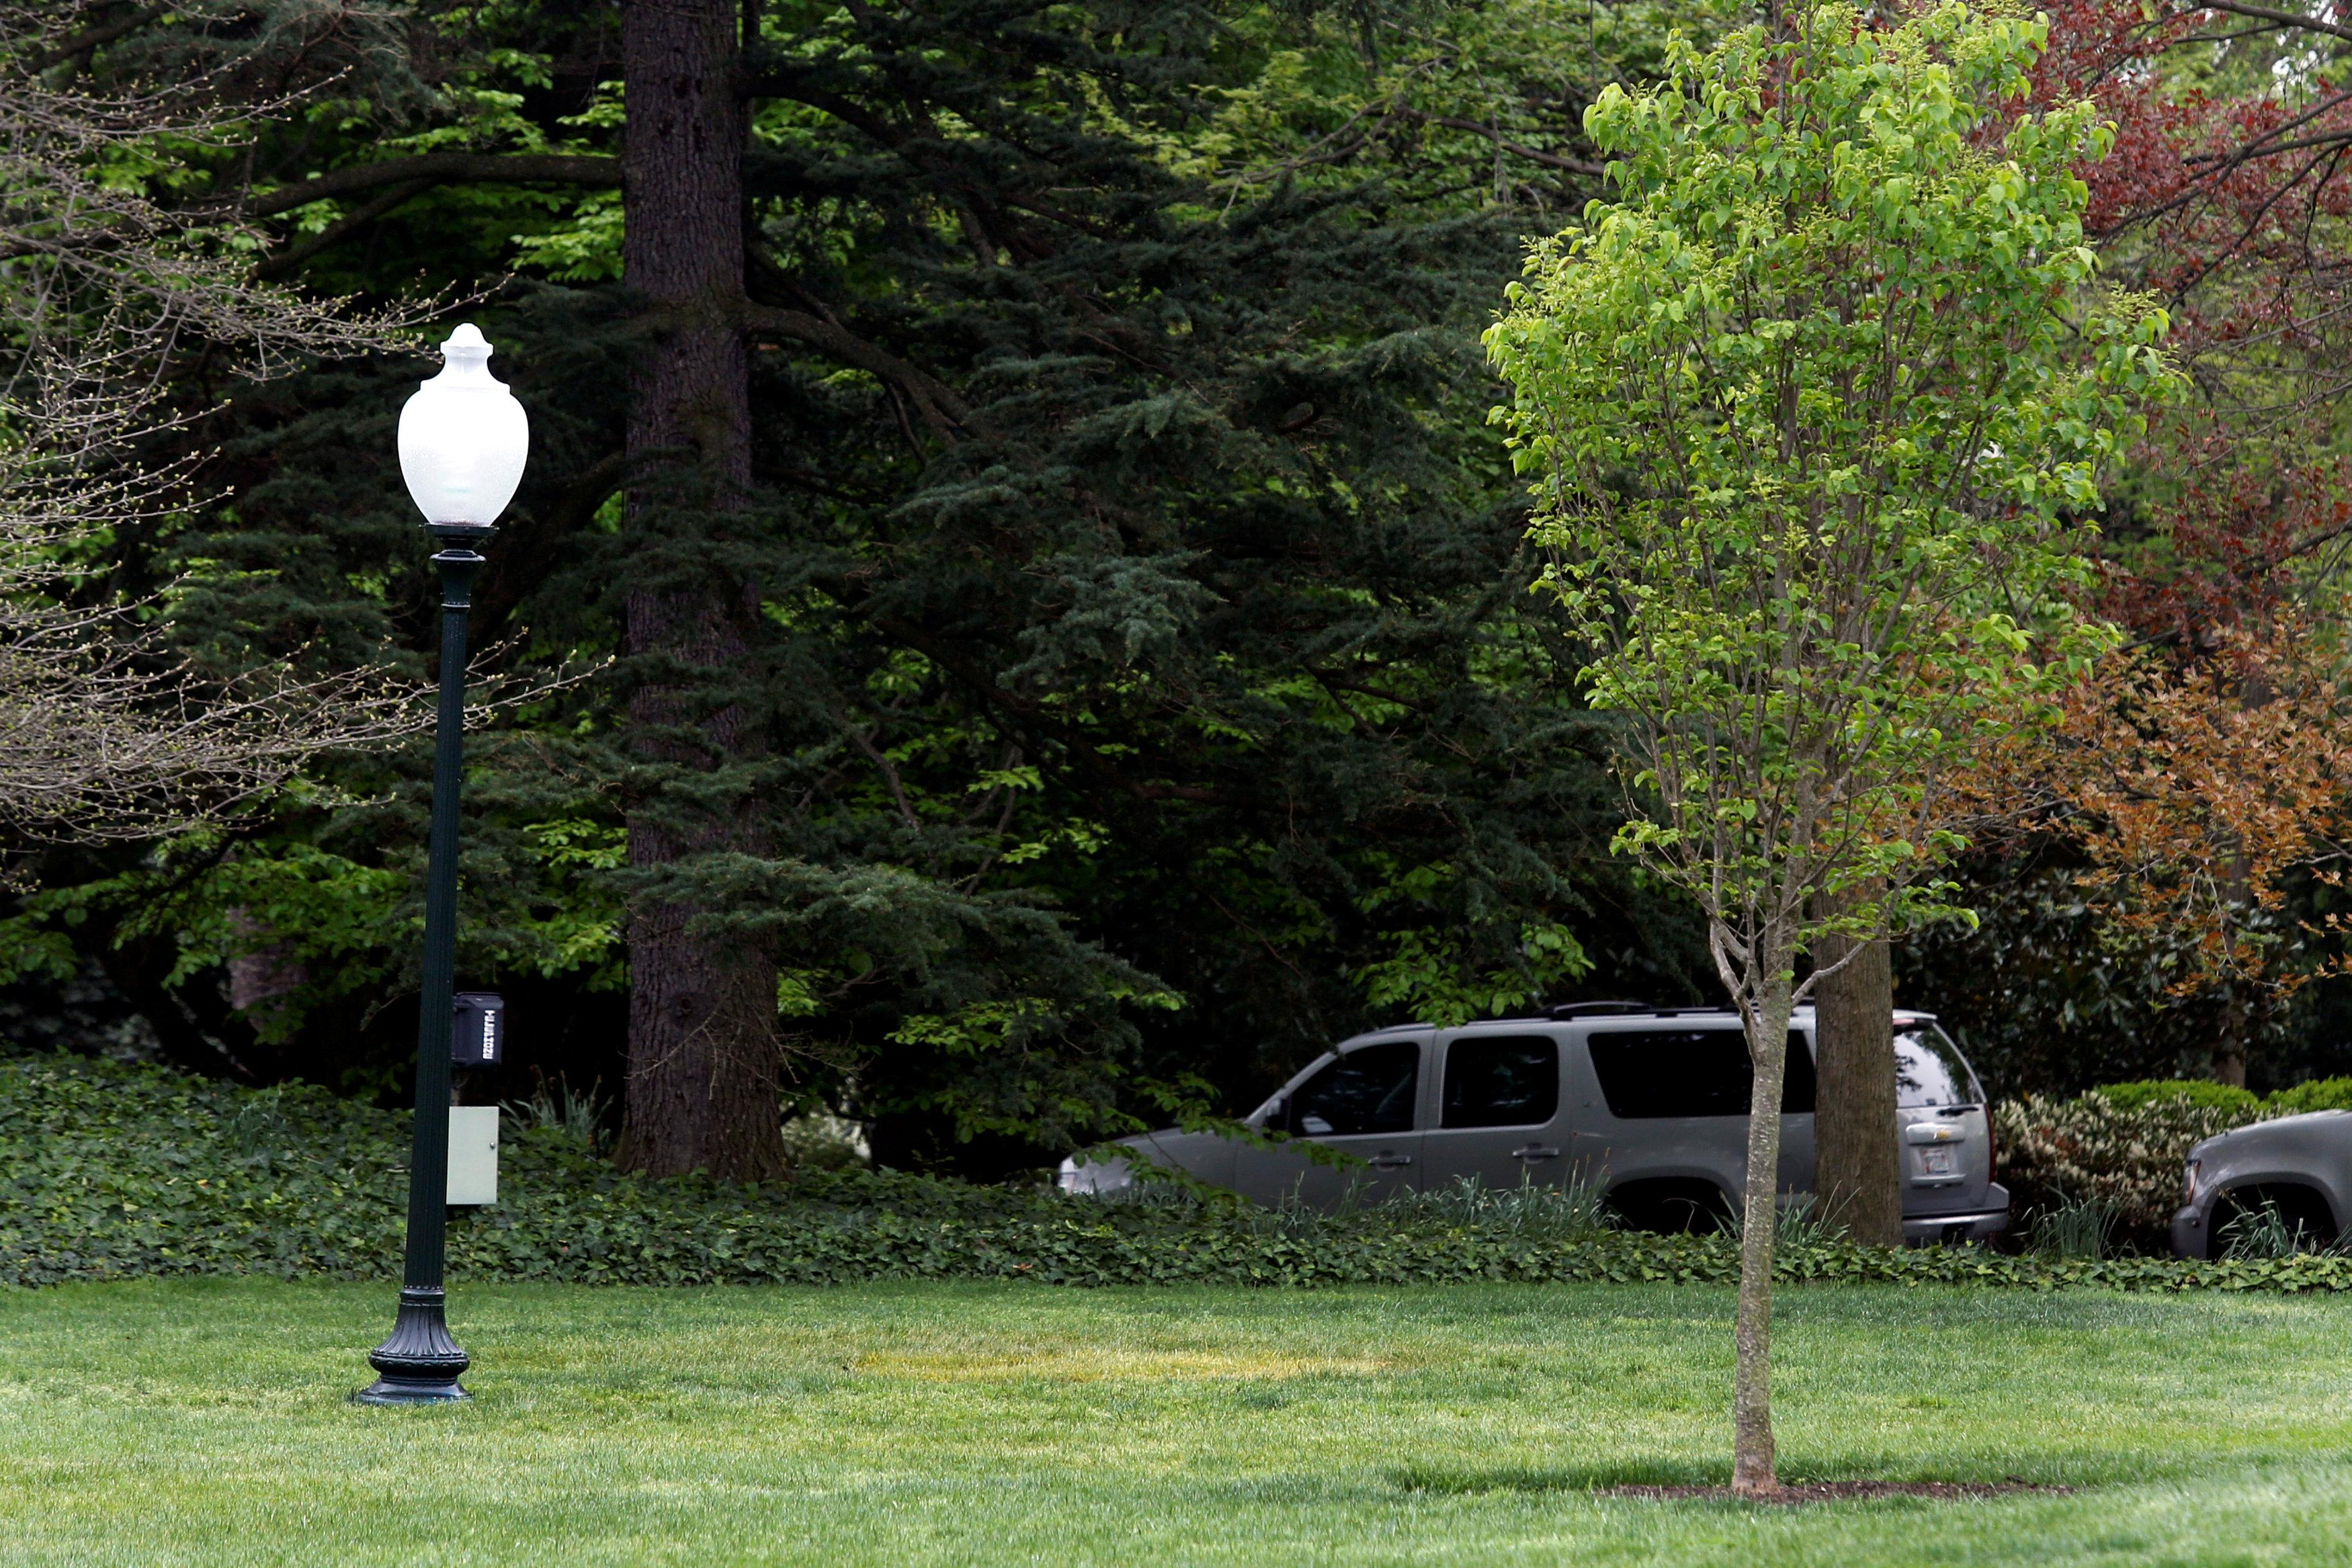 A yellow spot is seen where the tree planted by French President Emmanuel Macron and U.S. President Donald Trump on April 23 stood on the South Lawn of the White House in Washington, U.S., April 28, 2018. Yuri Gripas